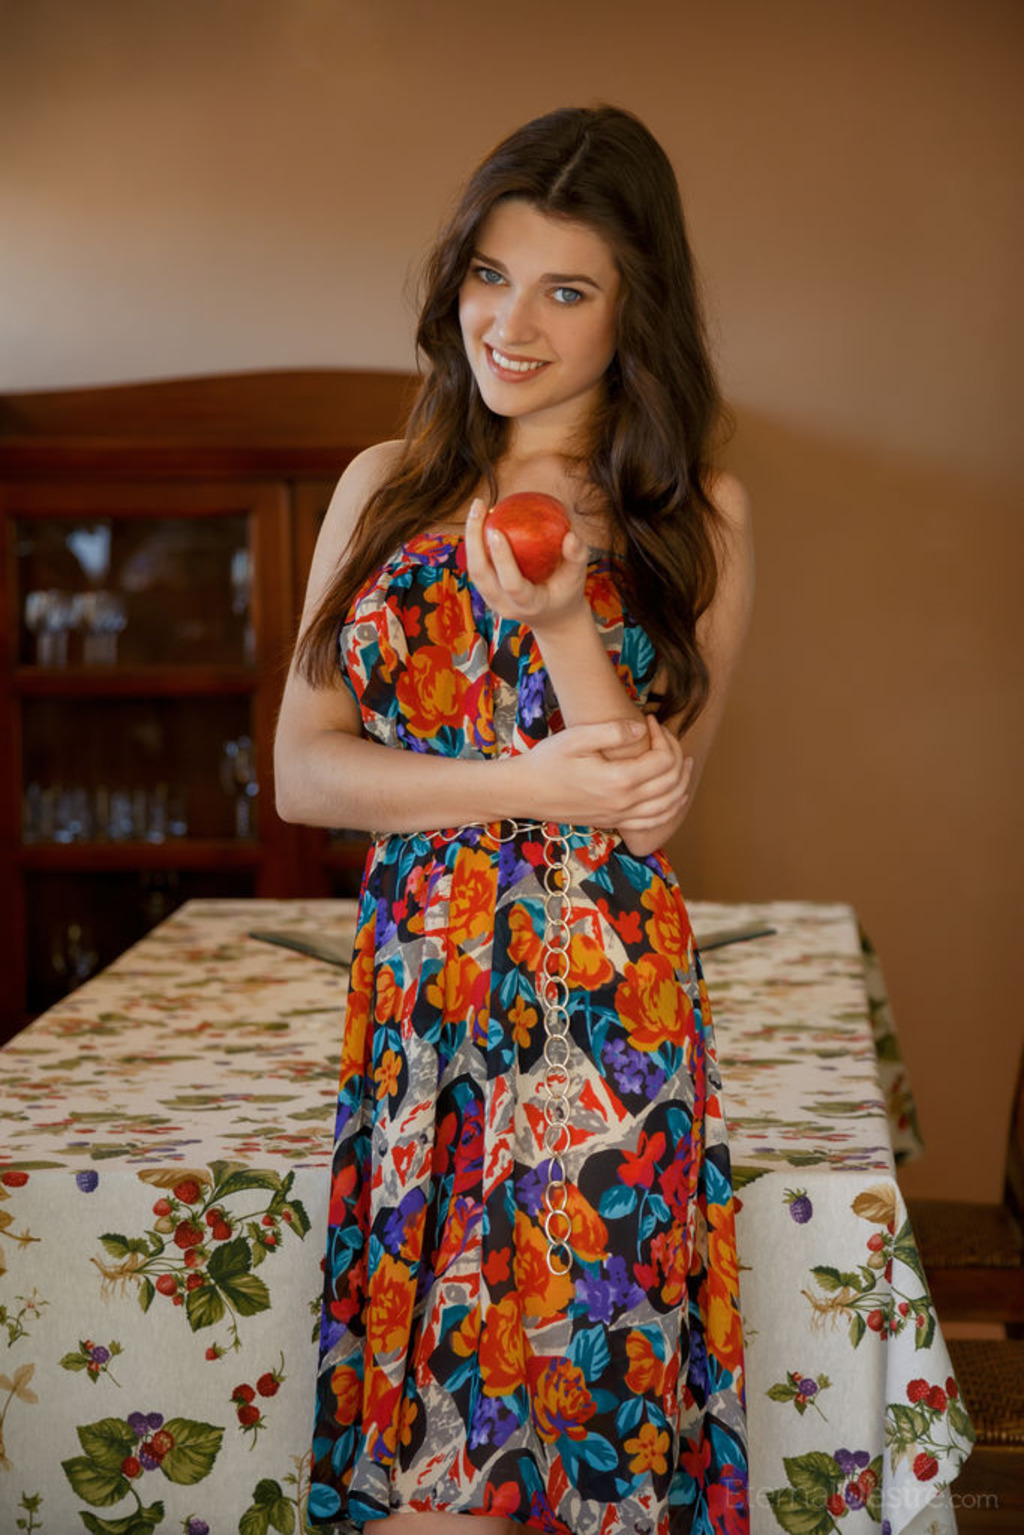 Serena Wood Nude - 129 Pictures: Rating 9.57/10